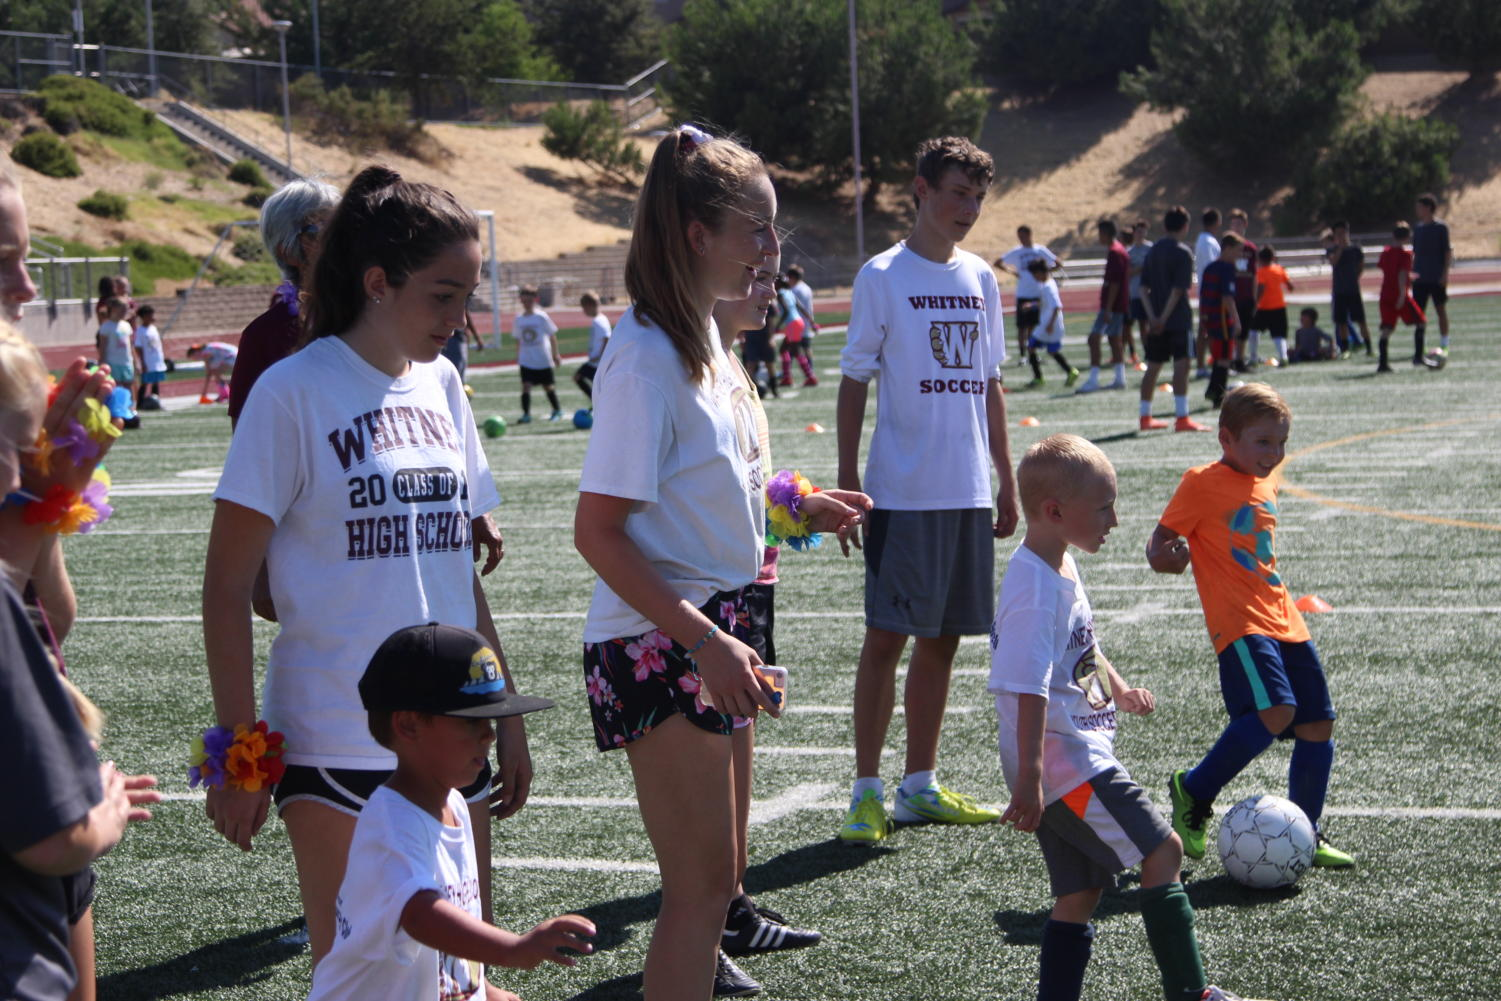 During the Whitney Kids Camp on July 24, Maddy Cortez, Mikayla Barkve and Connor Hedman practice passing with the participants. Photo by Britney Flint.